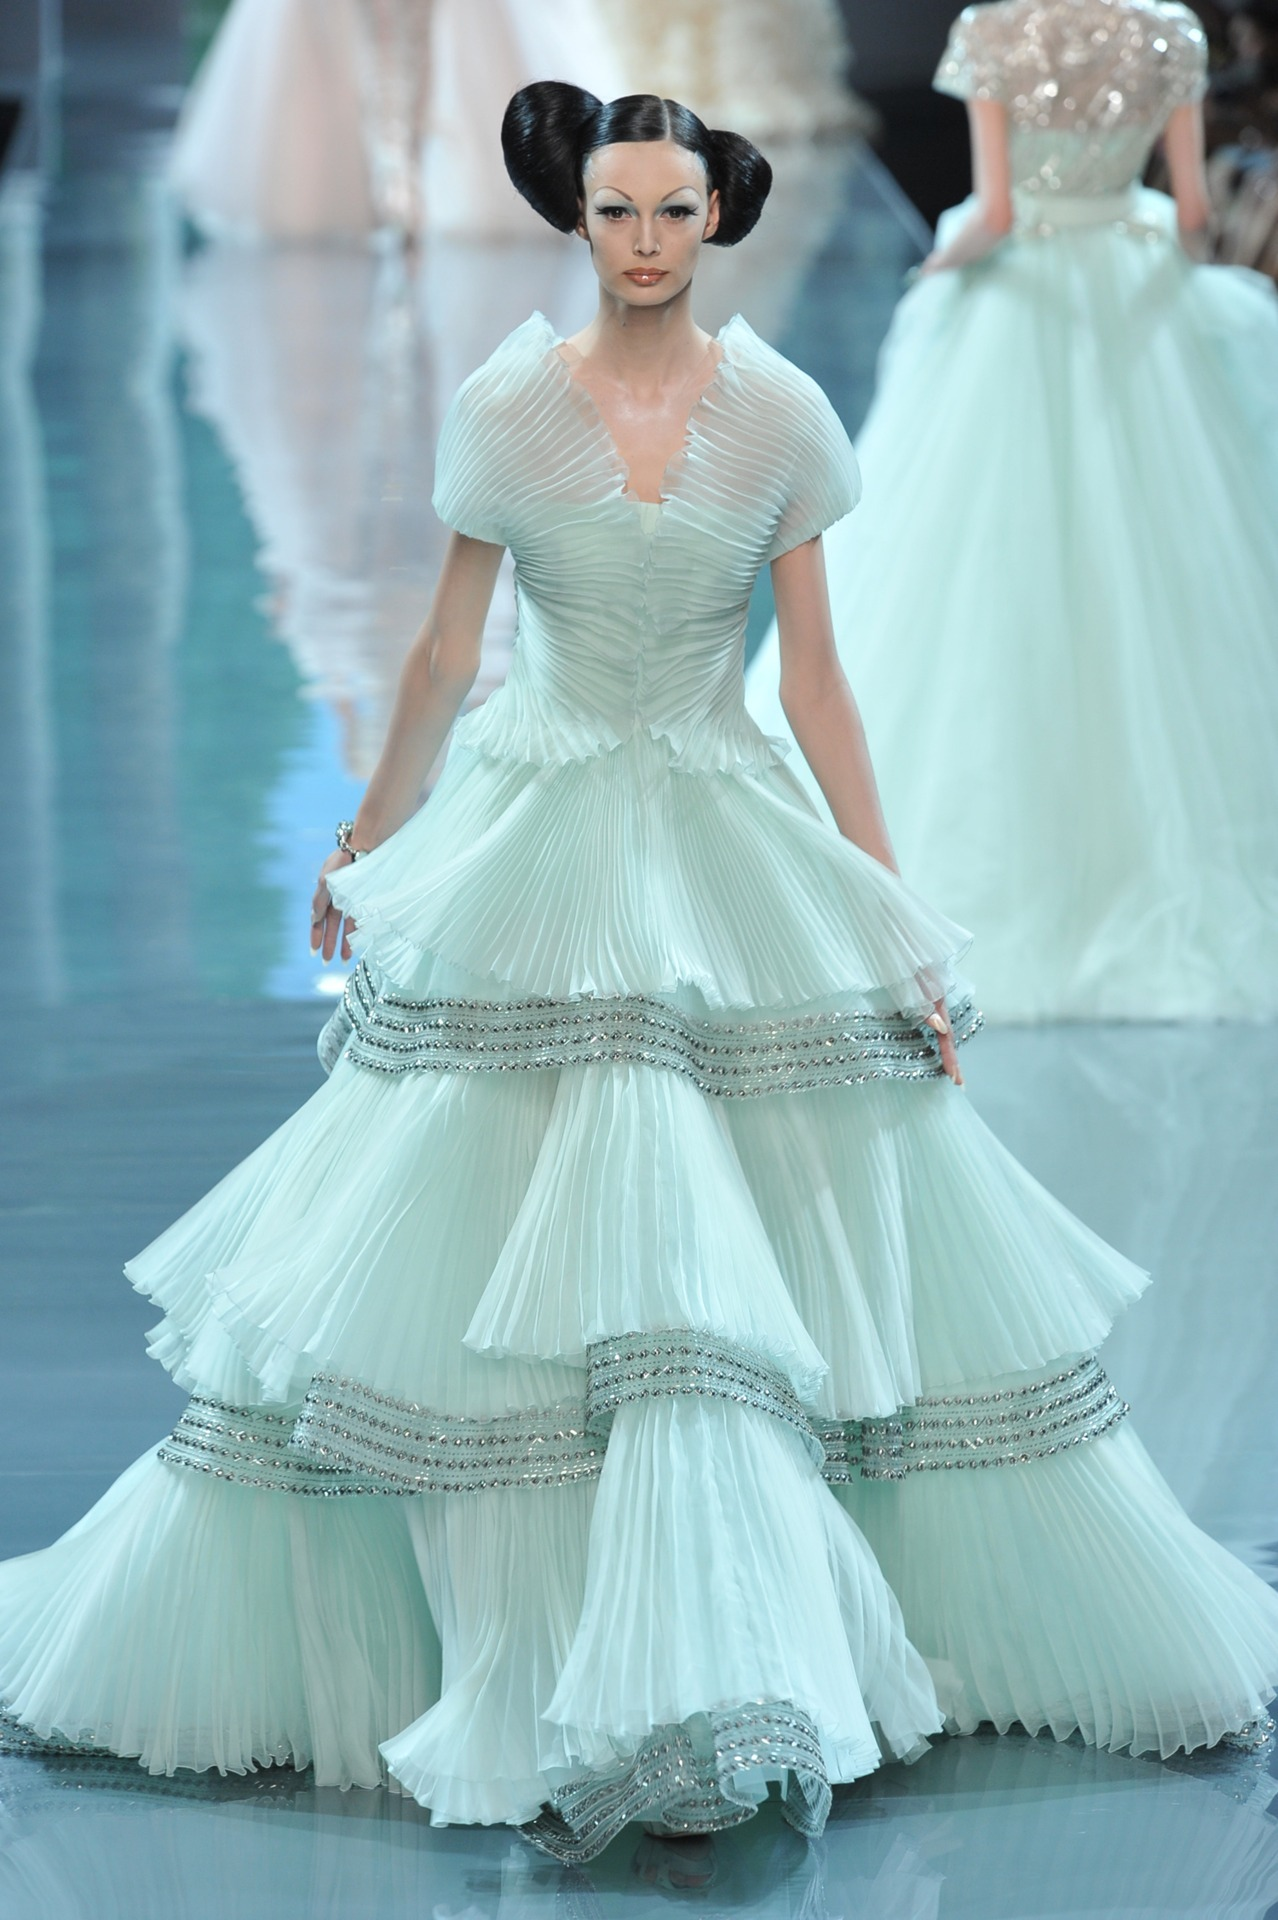 scarletto-hara:  Christian Dior Haute Couture Fall Winter 2008/2009